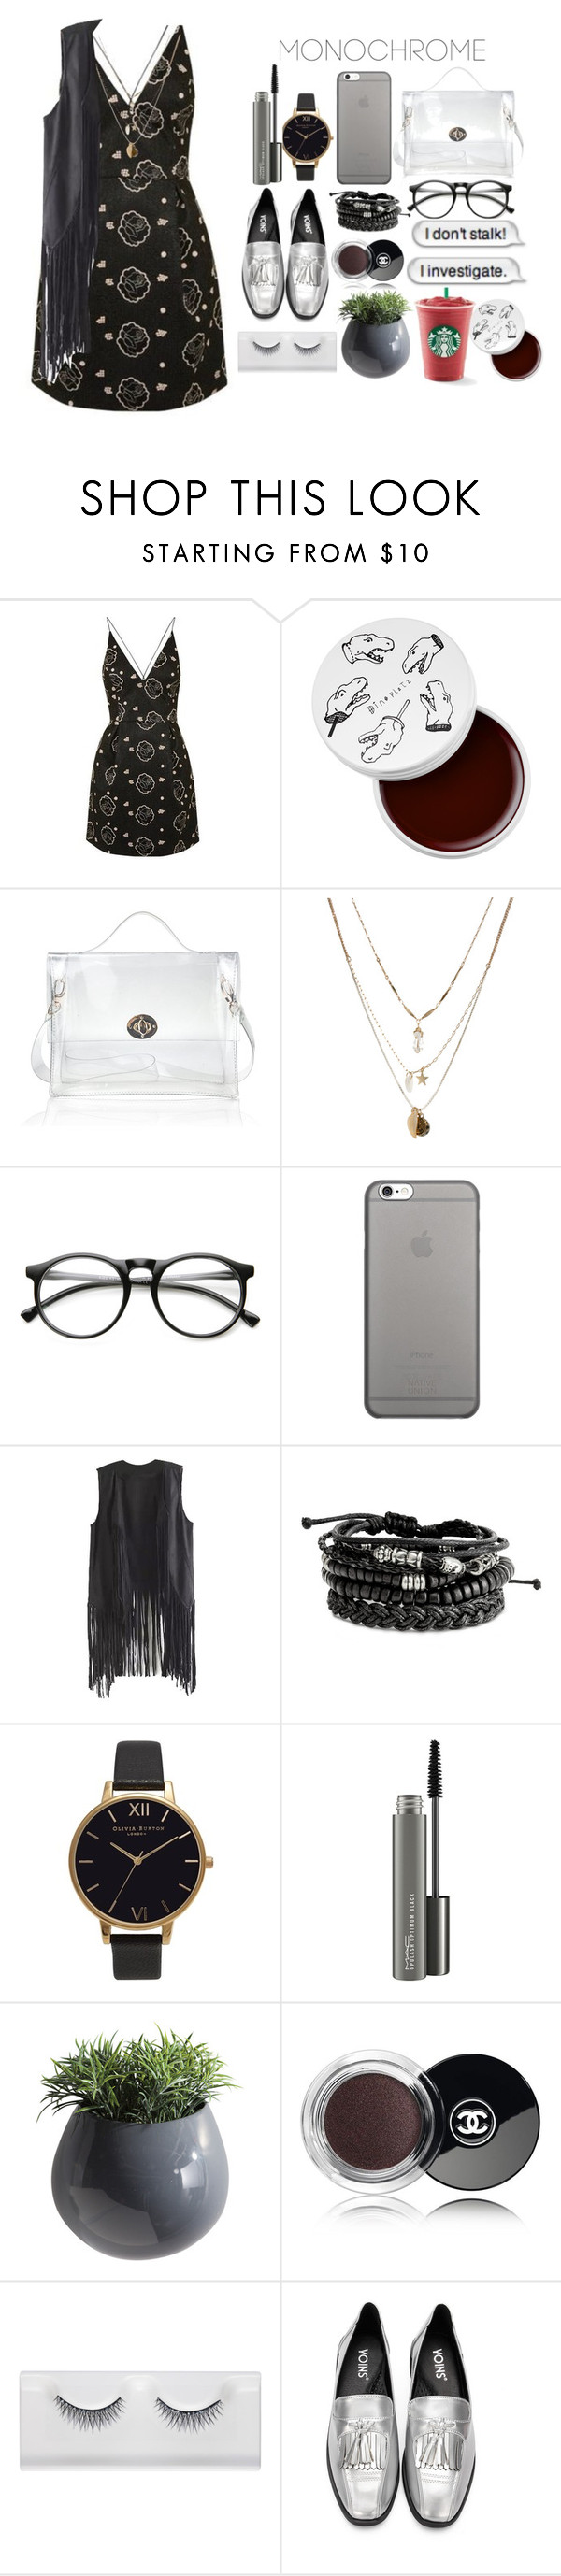 """Look by:Melanie"" by melanie-pacheco ❤ liked on Polyvore featuring Topshop, too cool for school, Orelia, INDIE HAIR, Native Union, Olivia Burton, MAC Cosmetics, Dot & Bo and Chanel"